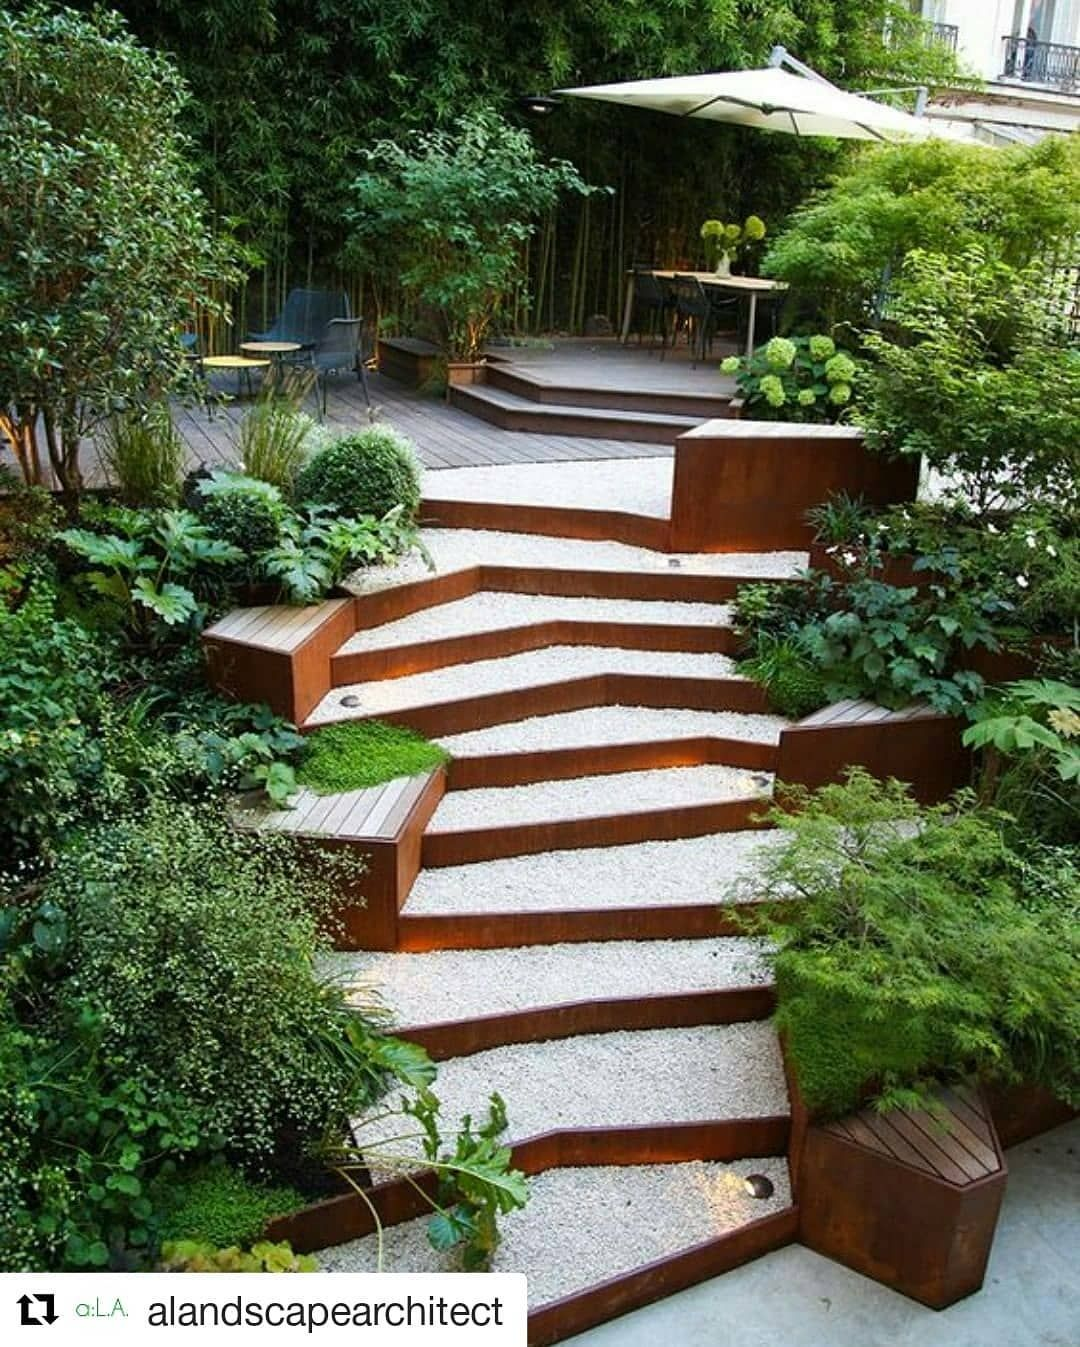 Fiona Environs On Instagram Adding Stairs To Your Design Can Be Tricky It Has To Be Aesthetic As W Backyard Hill Landscaping Landscape Steps Sloped Backyard